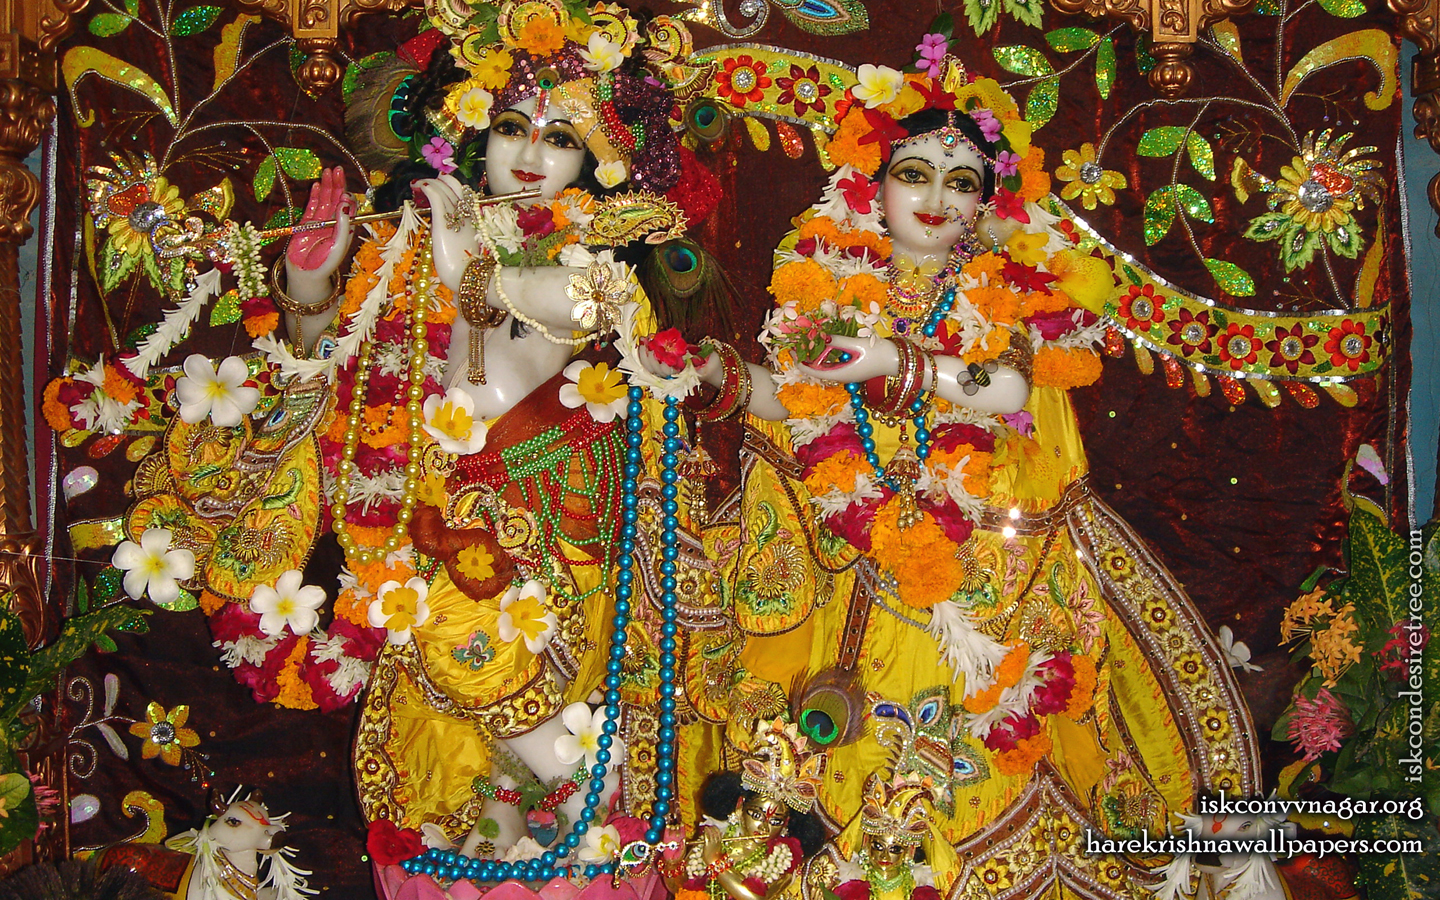 Sri Sri Radha Giridhari Wallpaper (006) Size 1440x900 Download